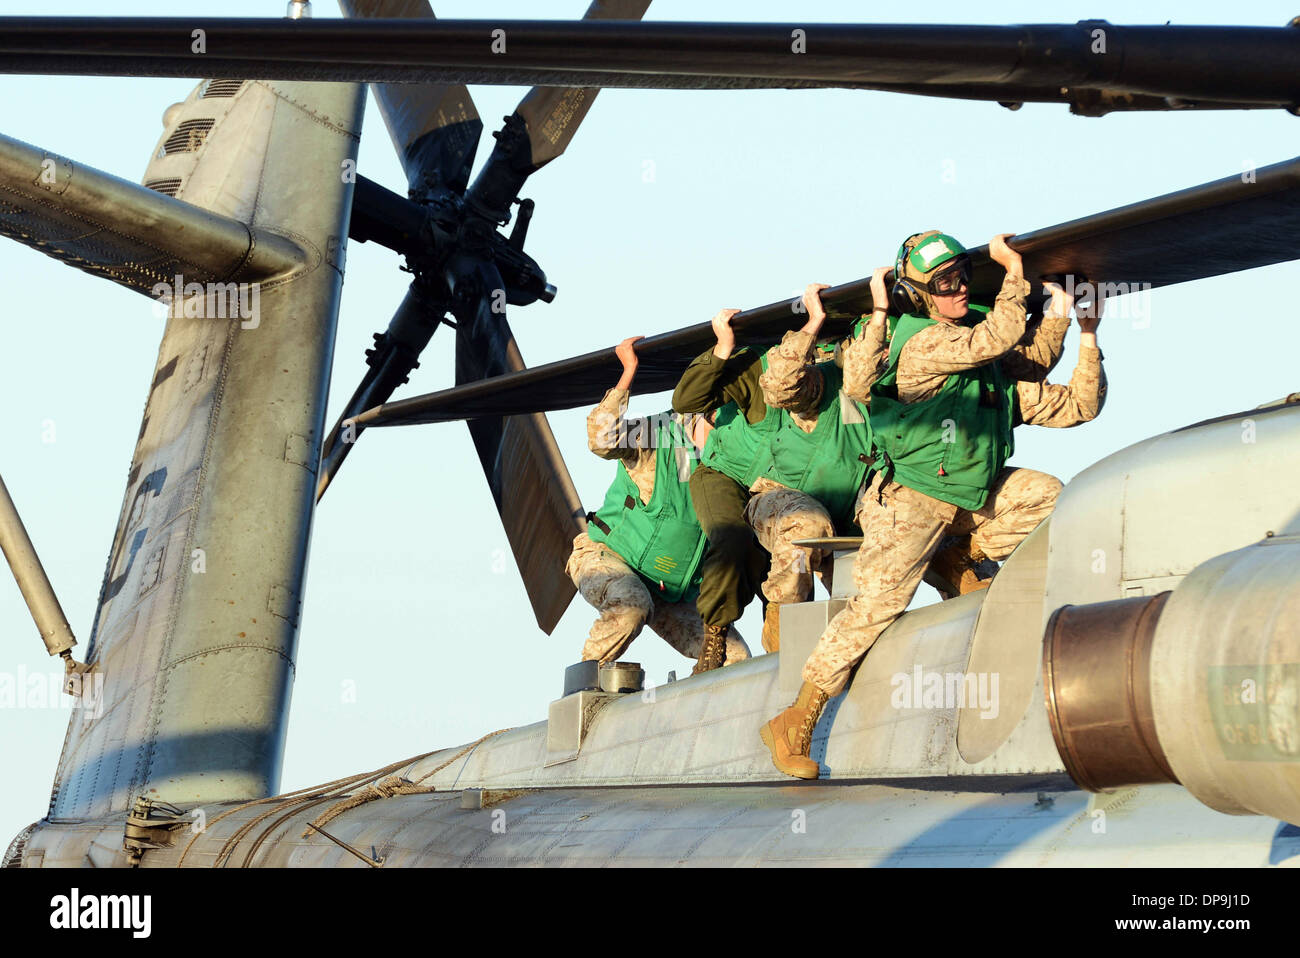 U.S. Marines align the rotor blades of a CH-53E Super Stallion helicopter for stowage - Stock Image